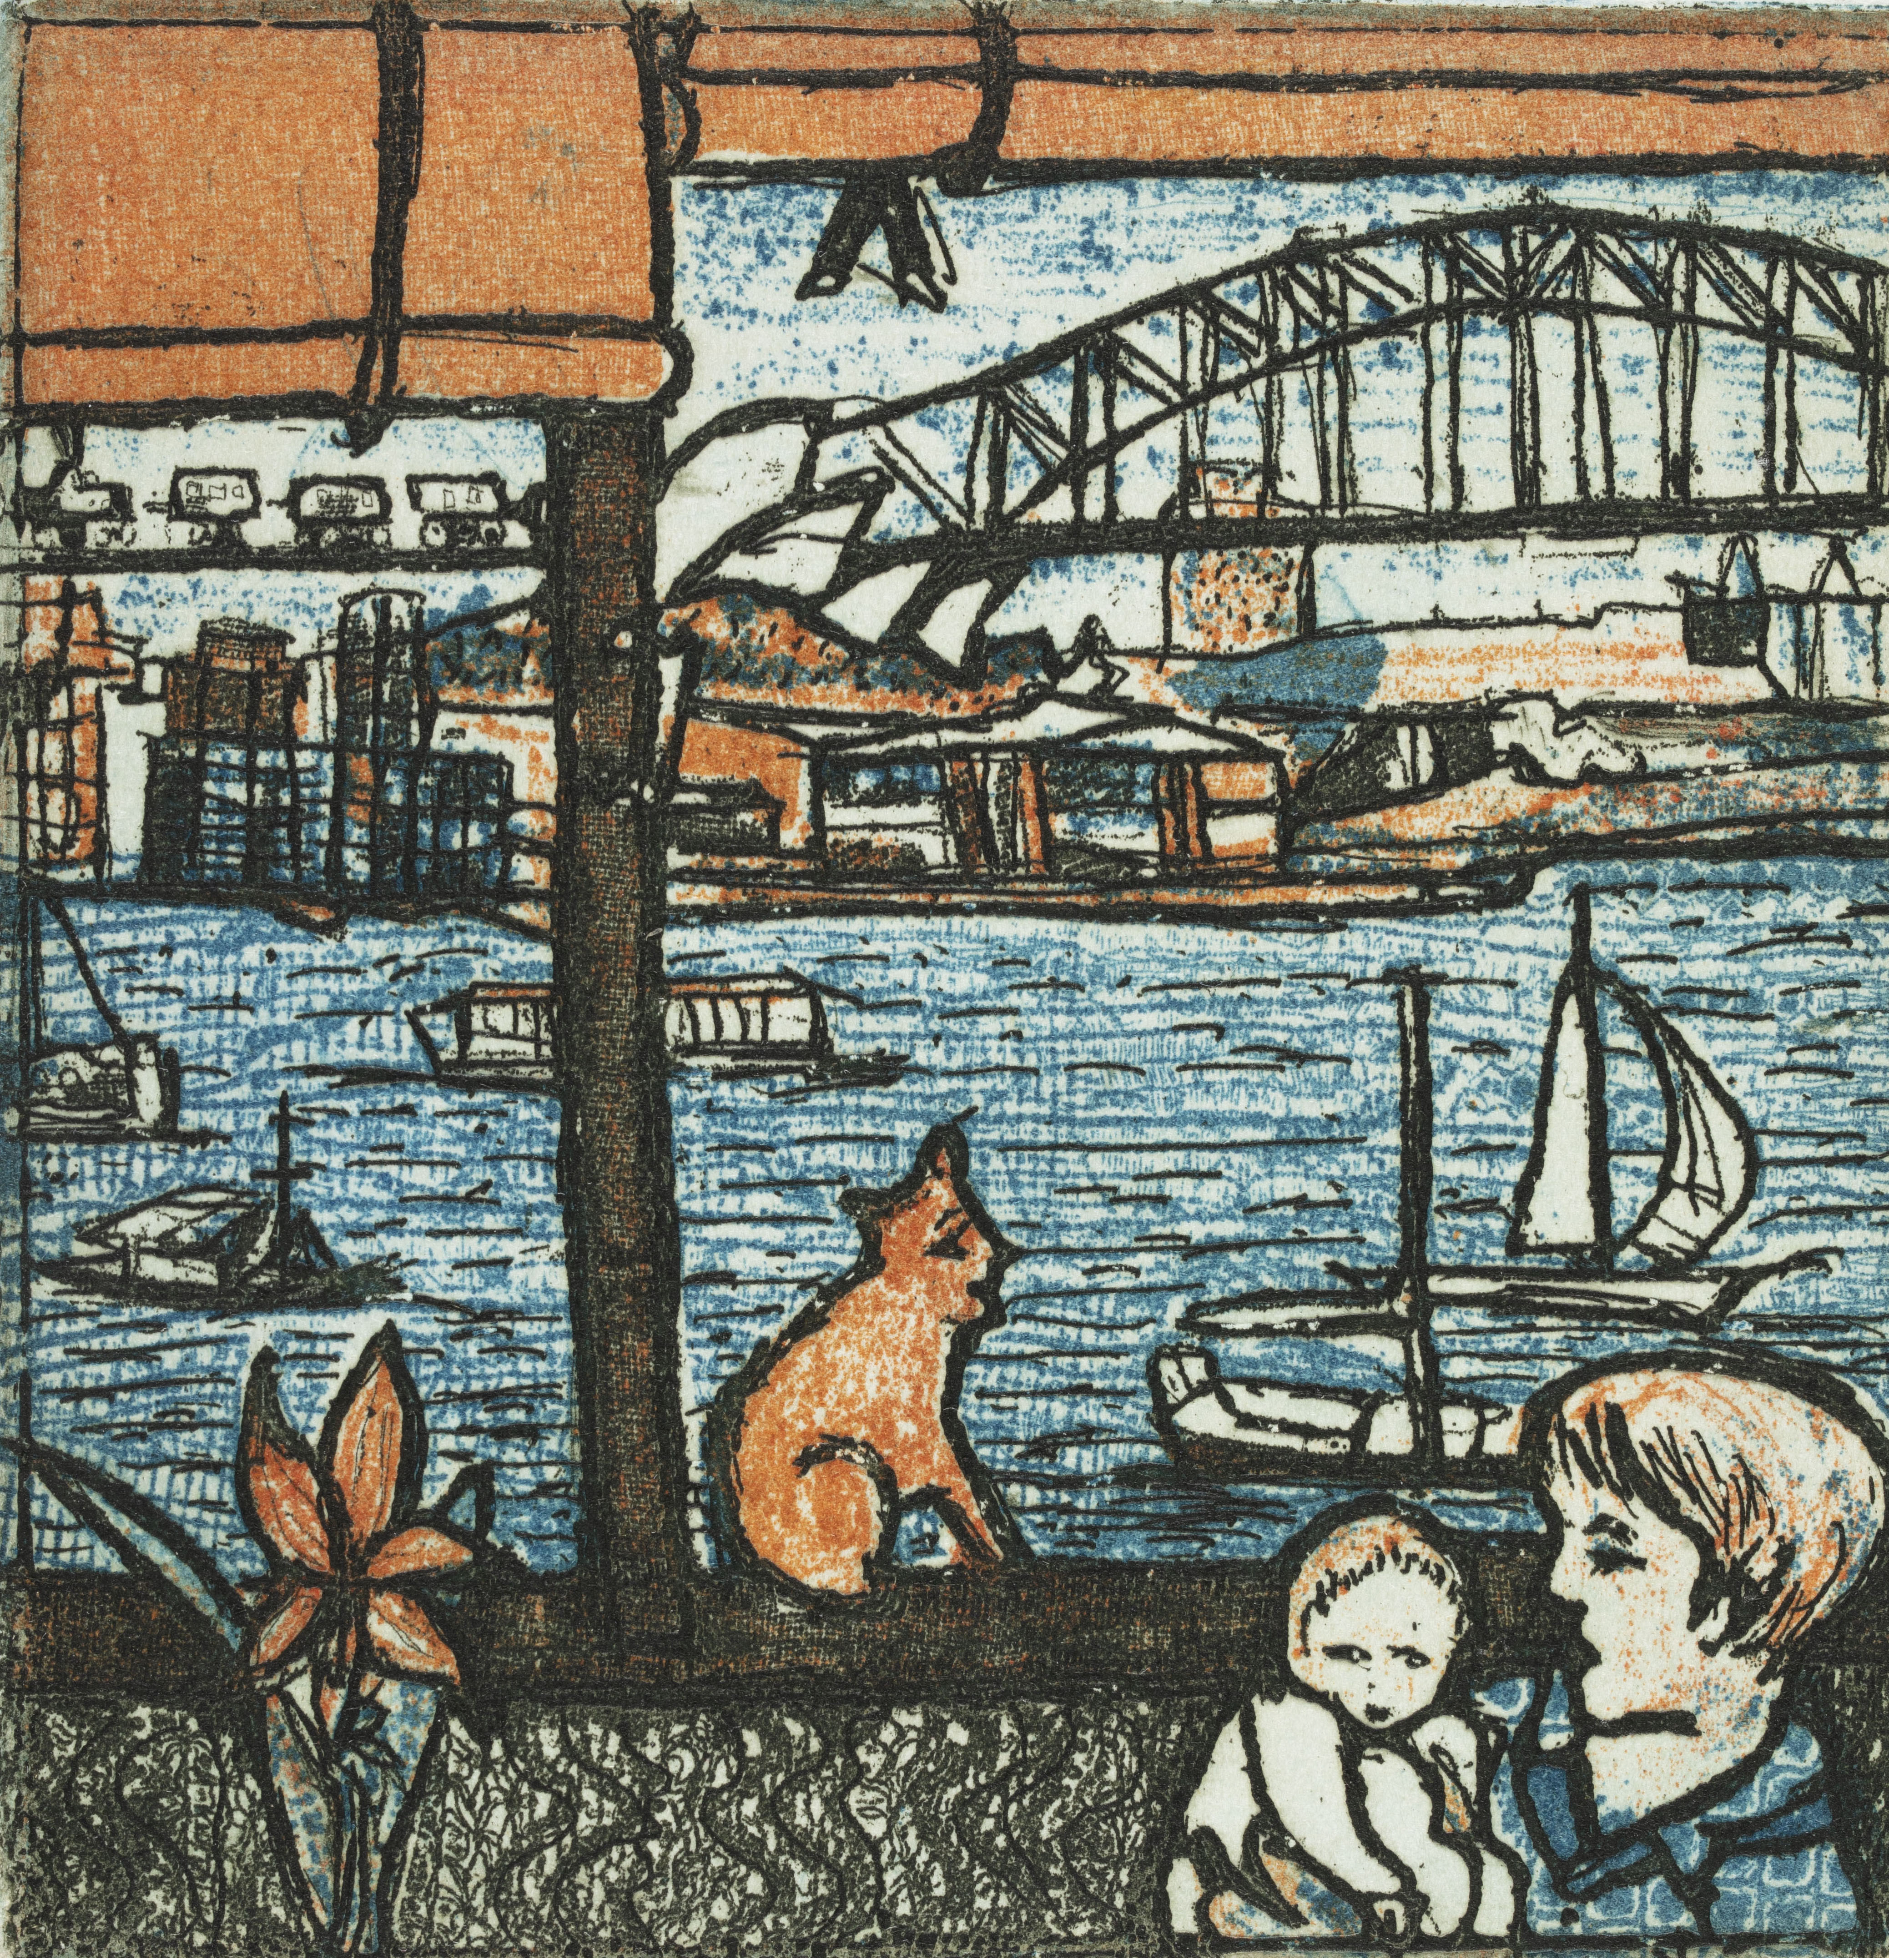 Sydney after Chagall, 2012, by Barbara A Davidson, limited edition